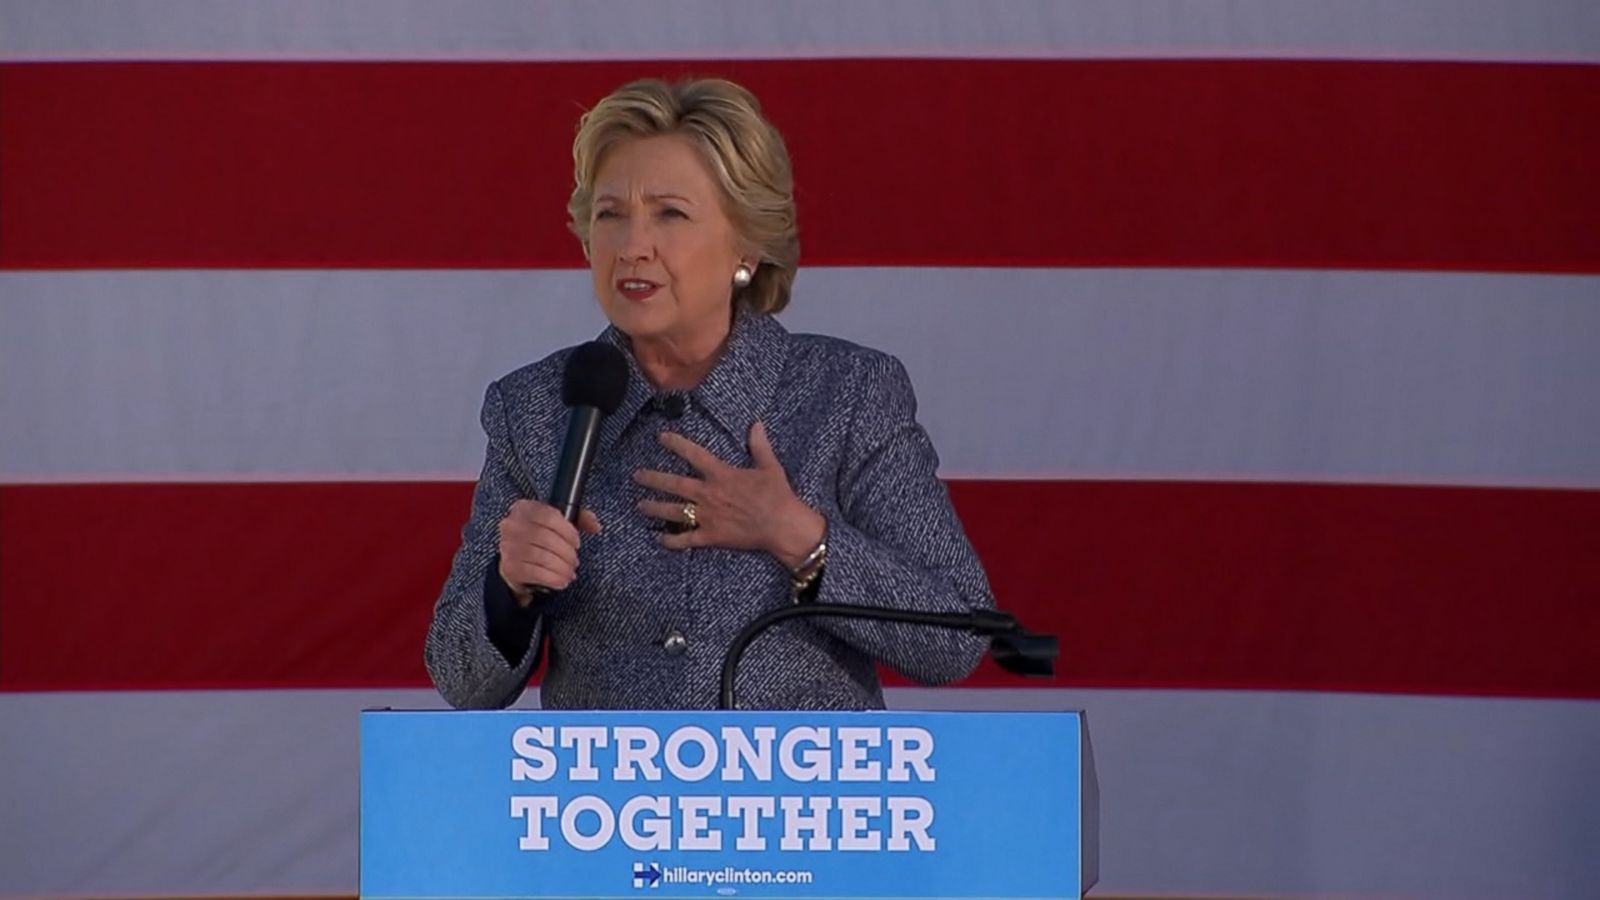 """""""I live in New York, people commute into New York from New Jersey we had about 100 commuters injured and 1 died I just want to send our thoughts and prayers to them,"""" Clinton said."""